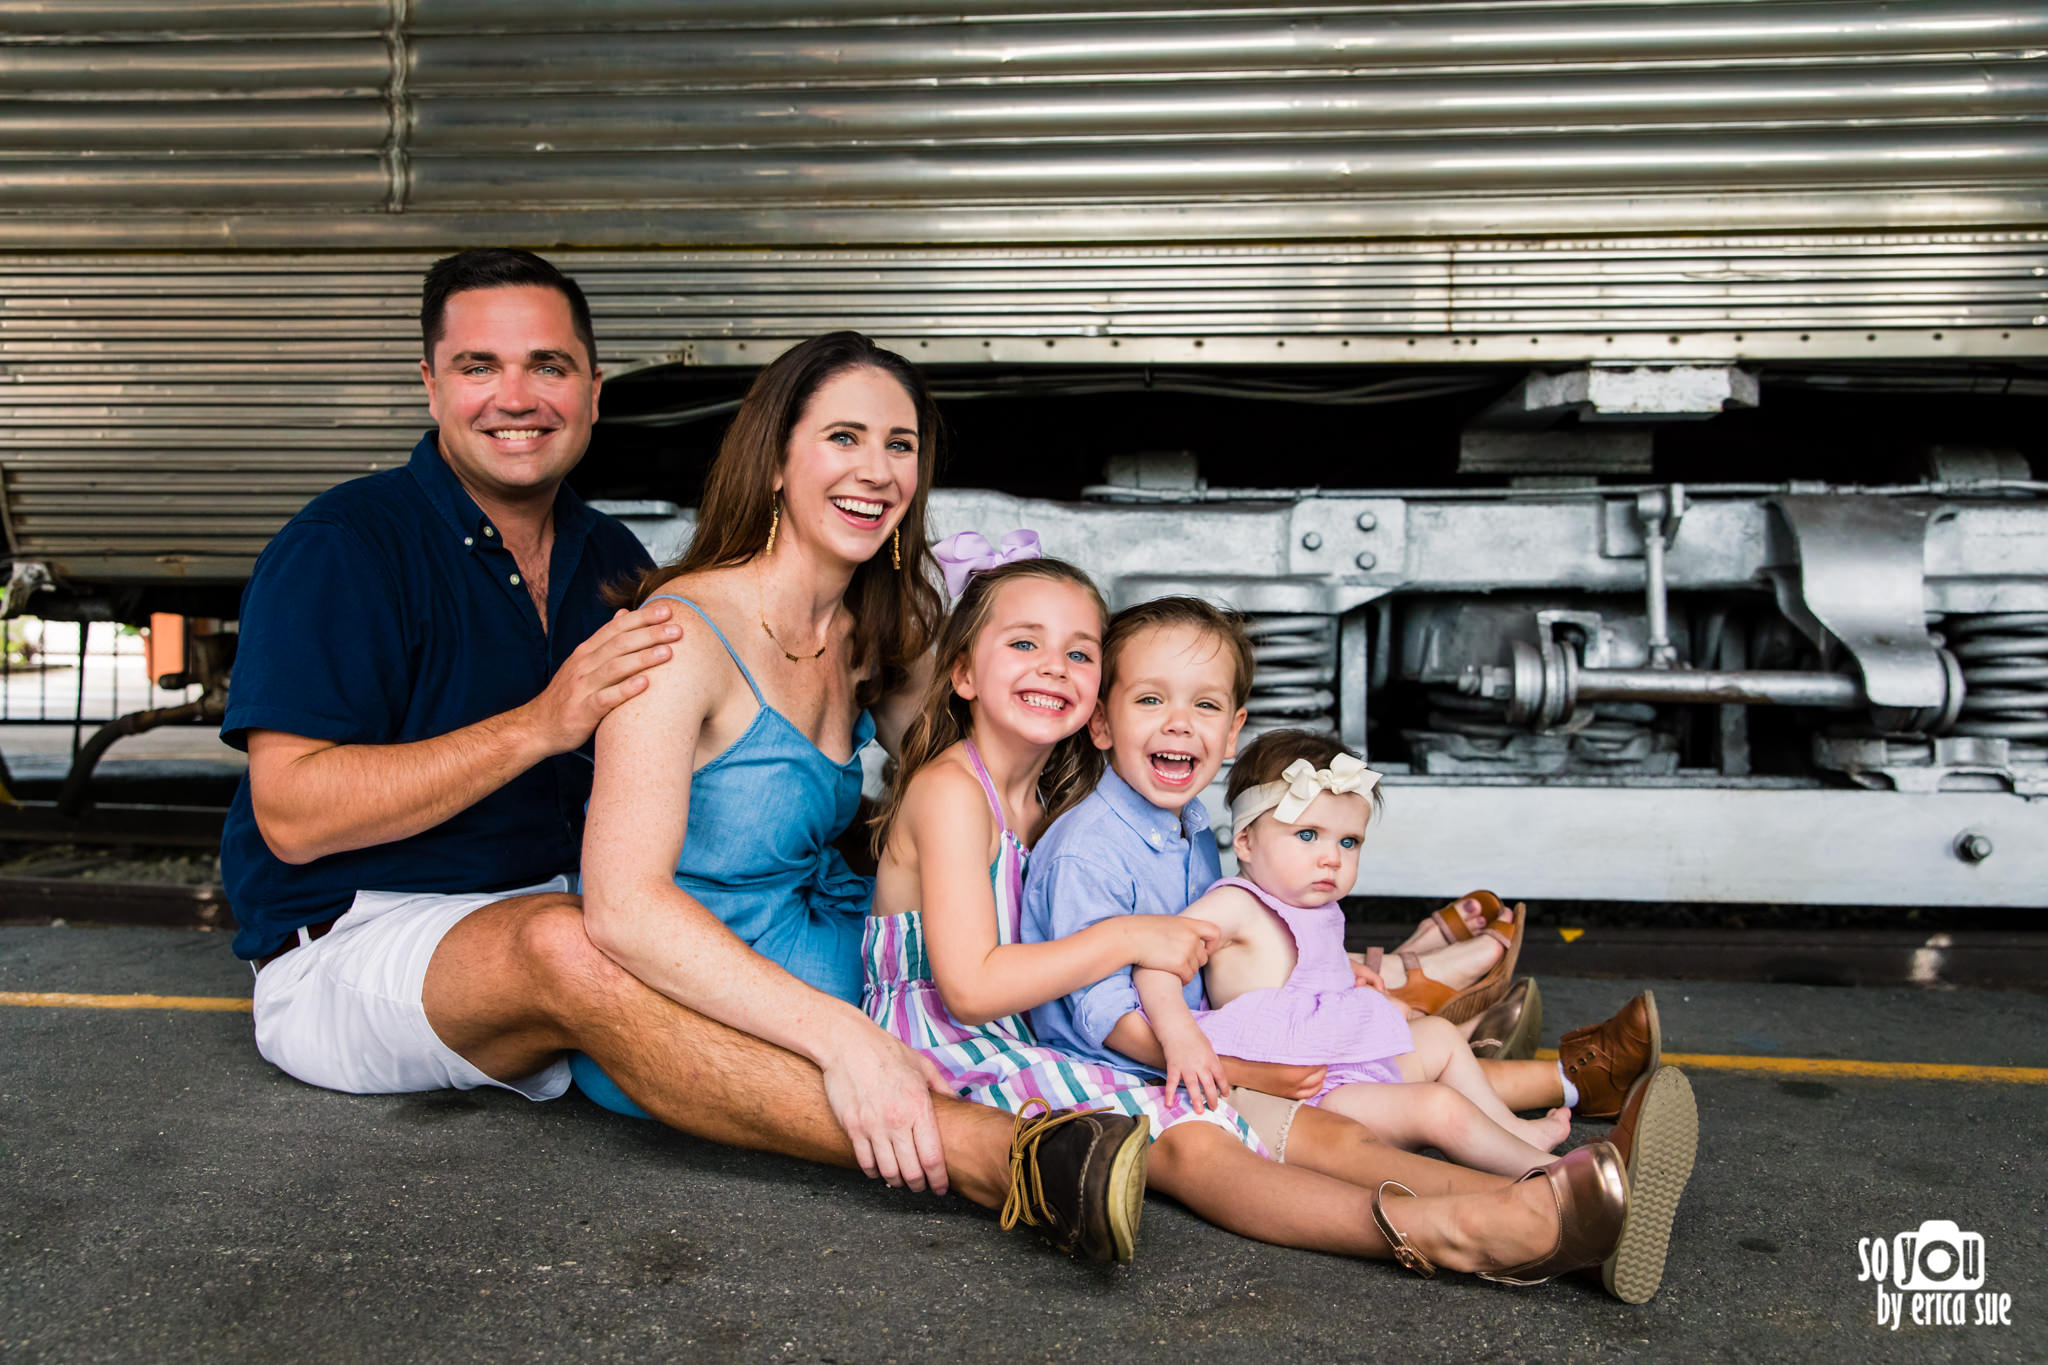 so-you-by-erica-sue-gold-coast-railroad-museum-miami-family-photo-shoot-session-6885.JPG